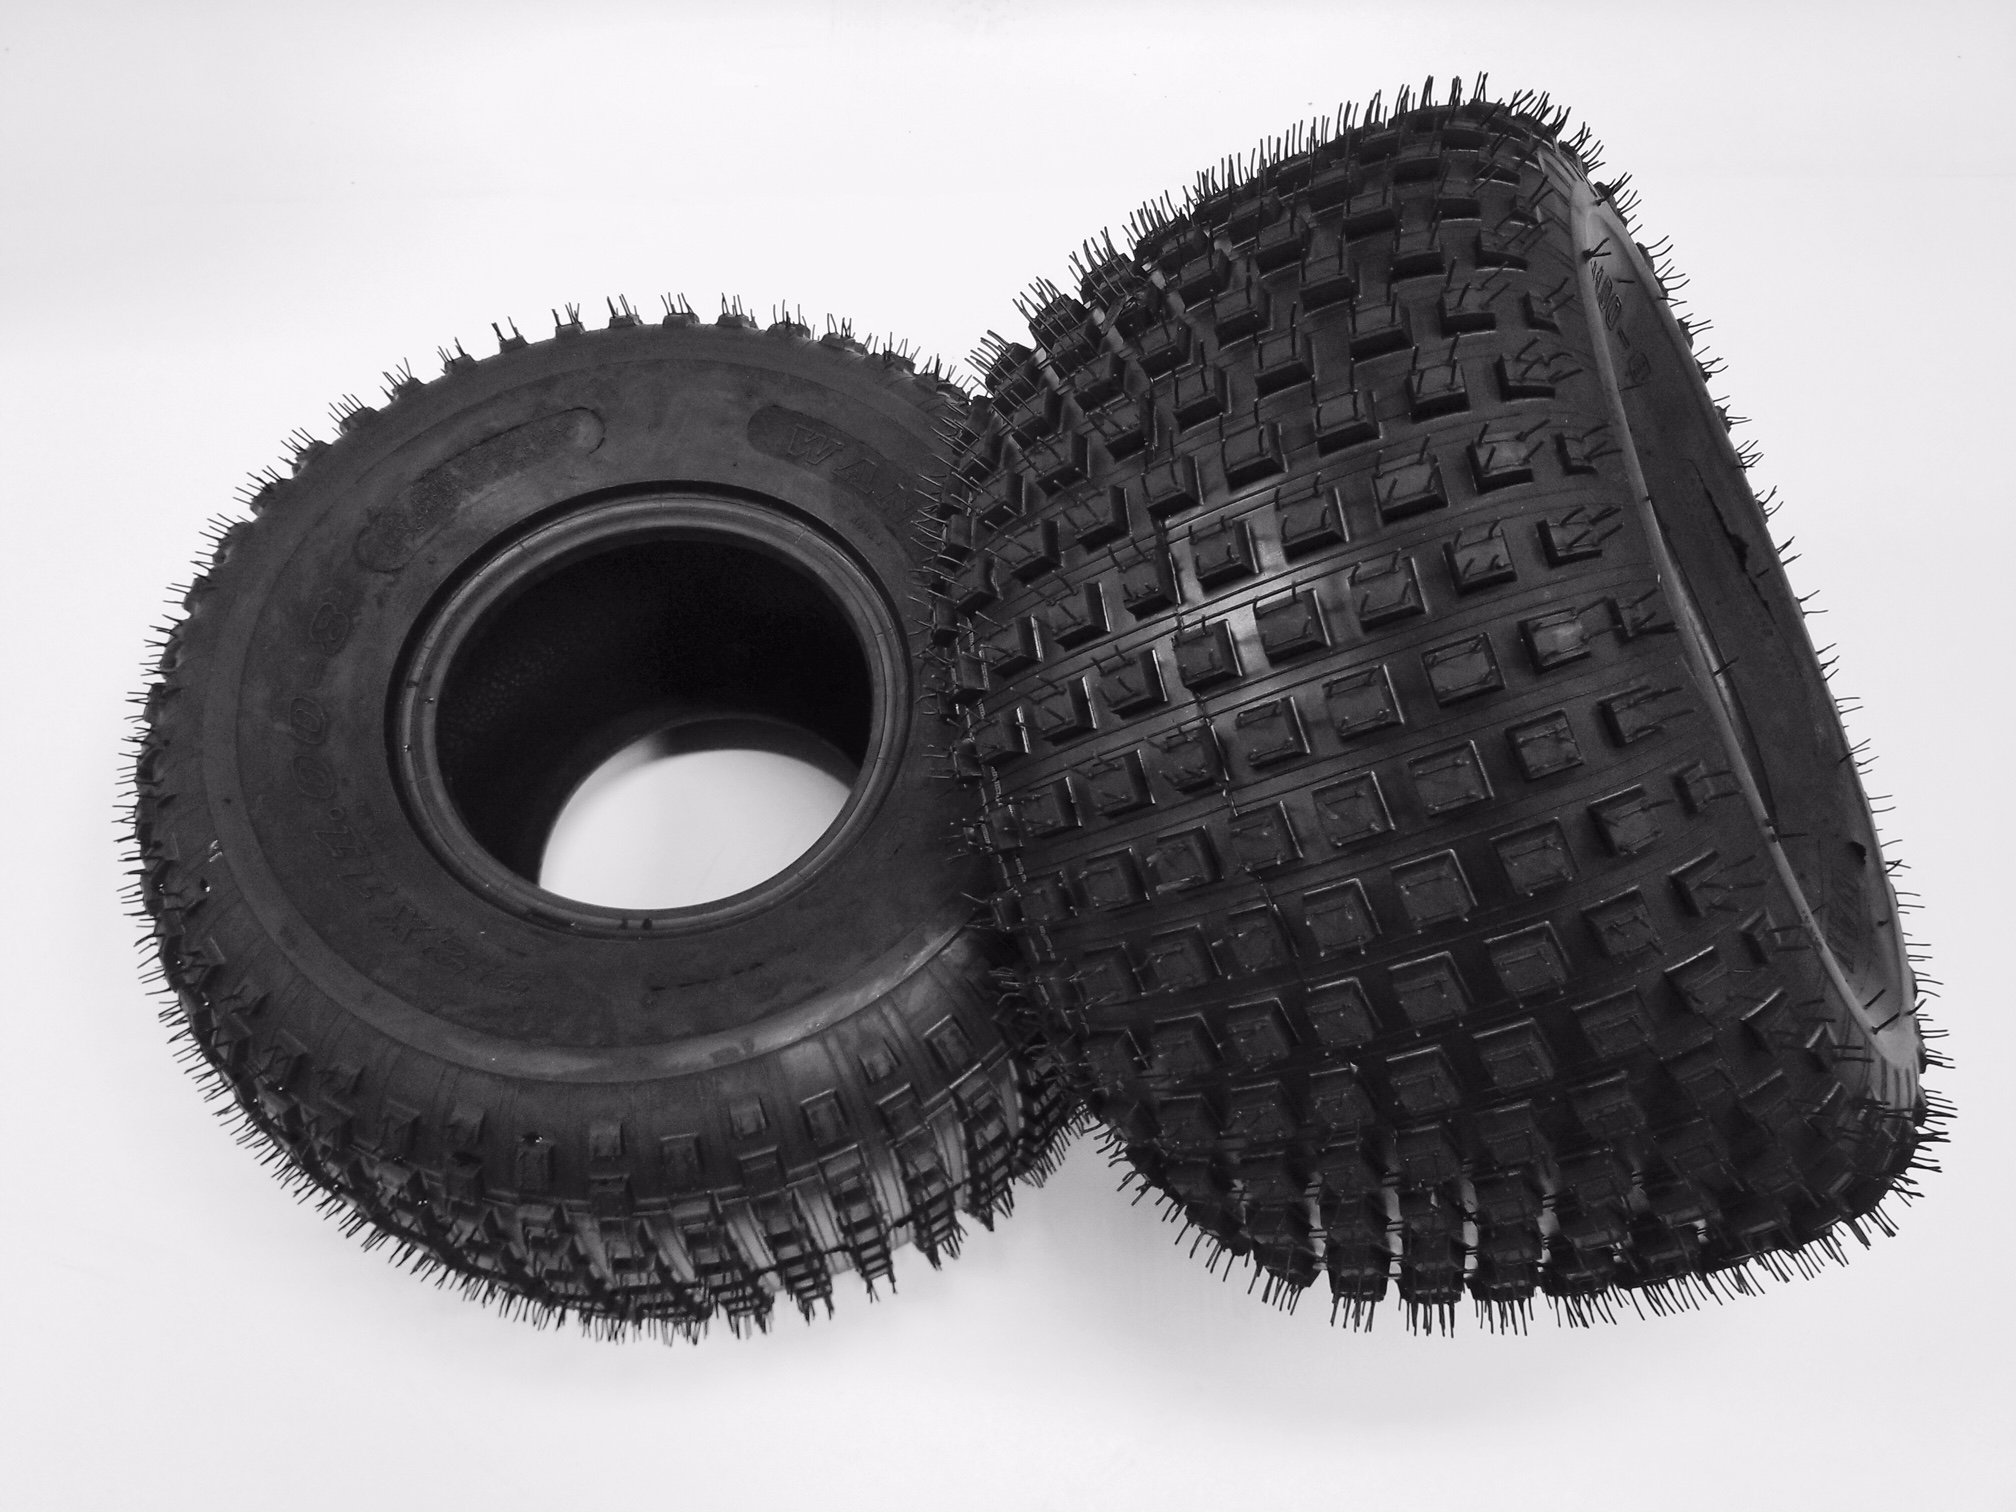 2 New SunF A011 Knobby ATV Tires 22x11-8, 6 PR